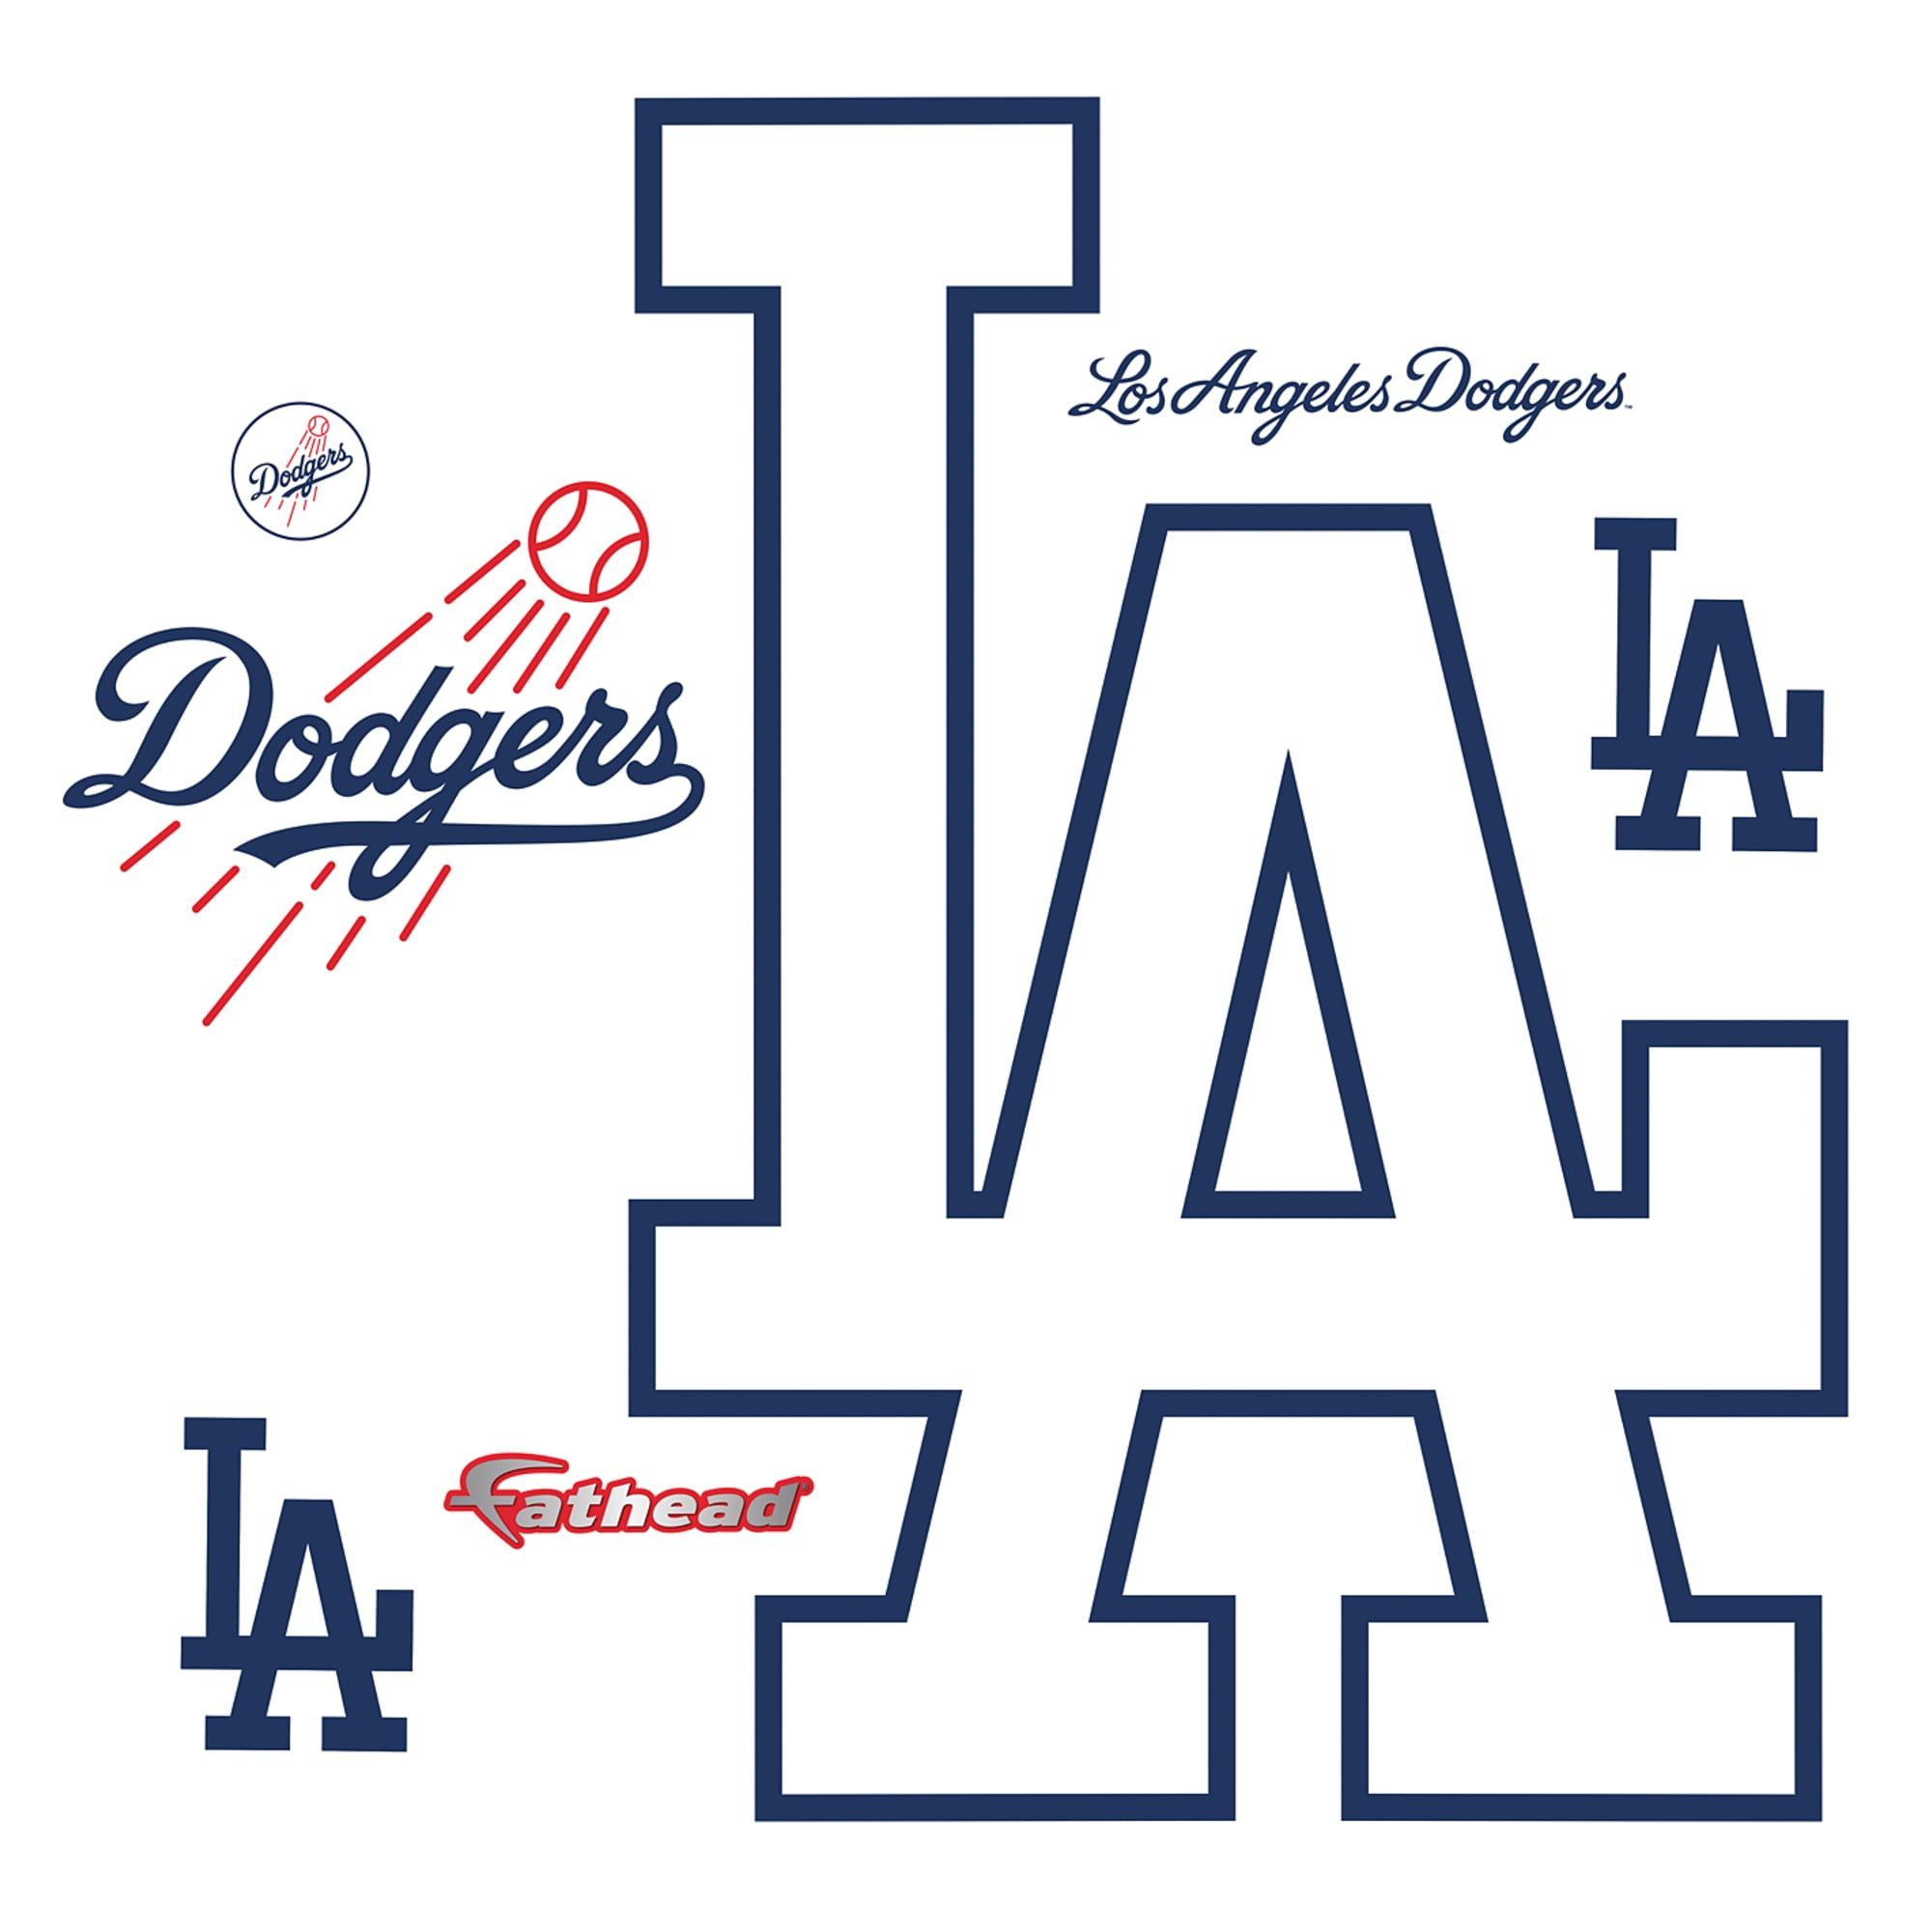 Los Angeles Dodgers Alternate Logo Giant Officially Licensed Mlb Removable Wall Decal Dodgers Los Angeles Dodgers Logo La Dodgers Logo